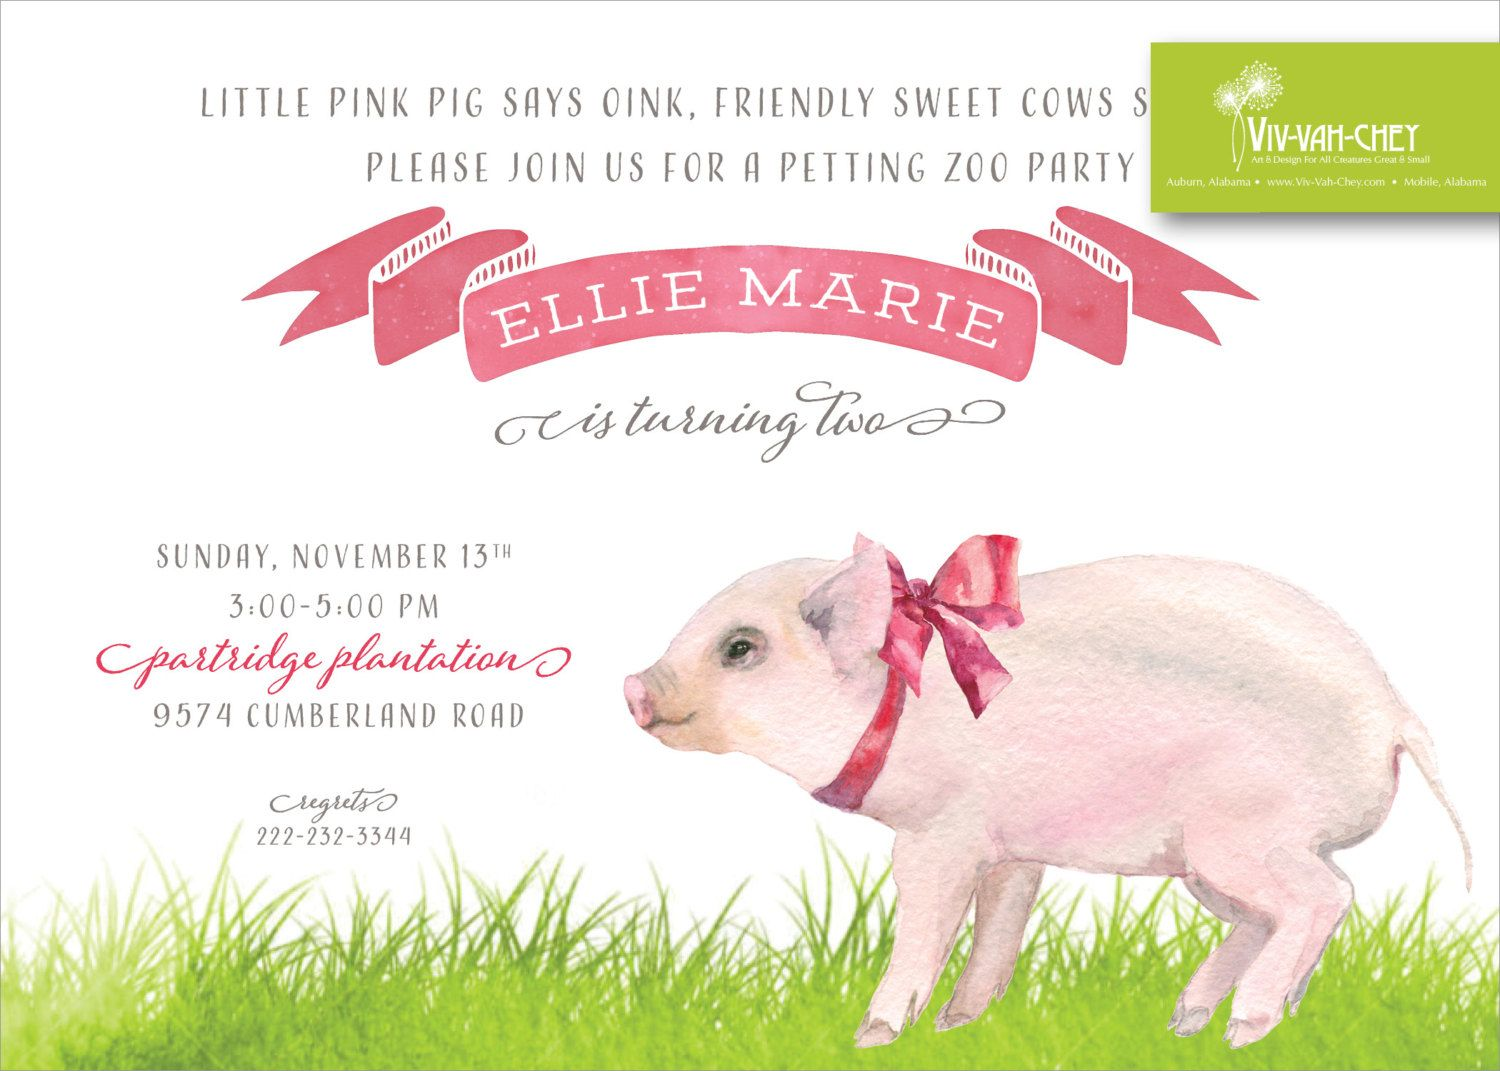 Pretty Pig on the Farm | Birthday Party Invitation by VivVahChey on ...